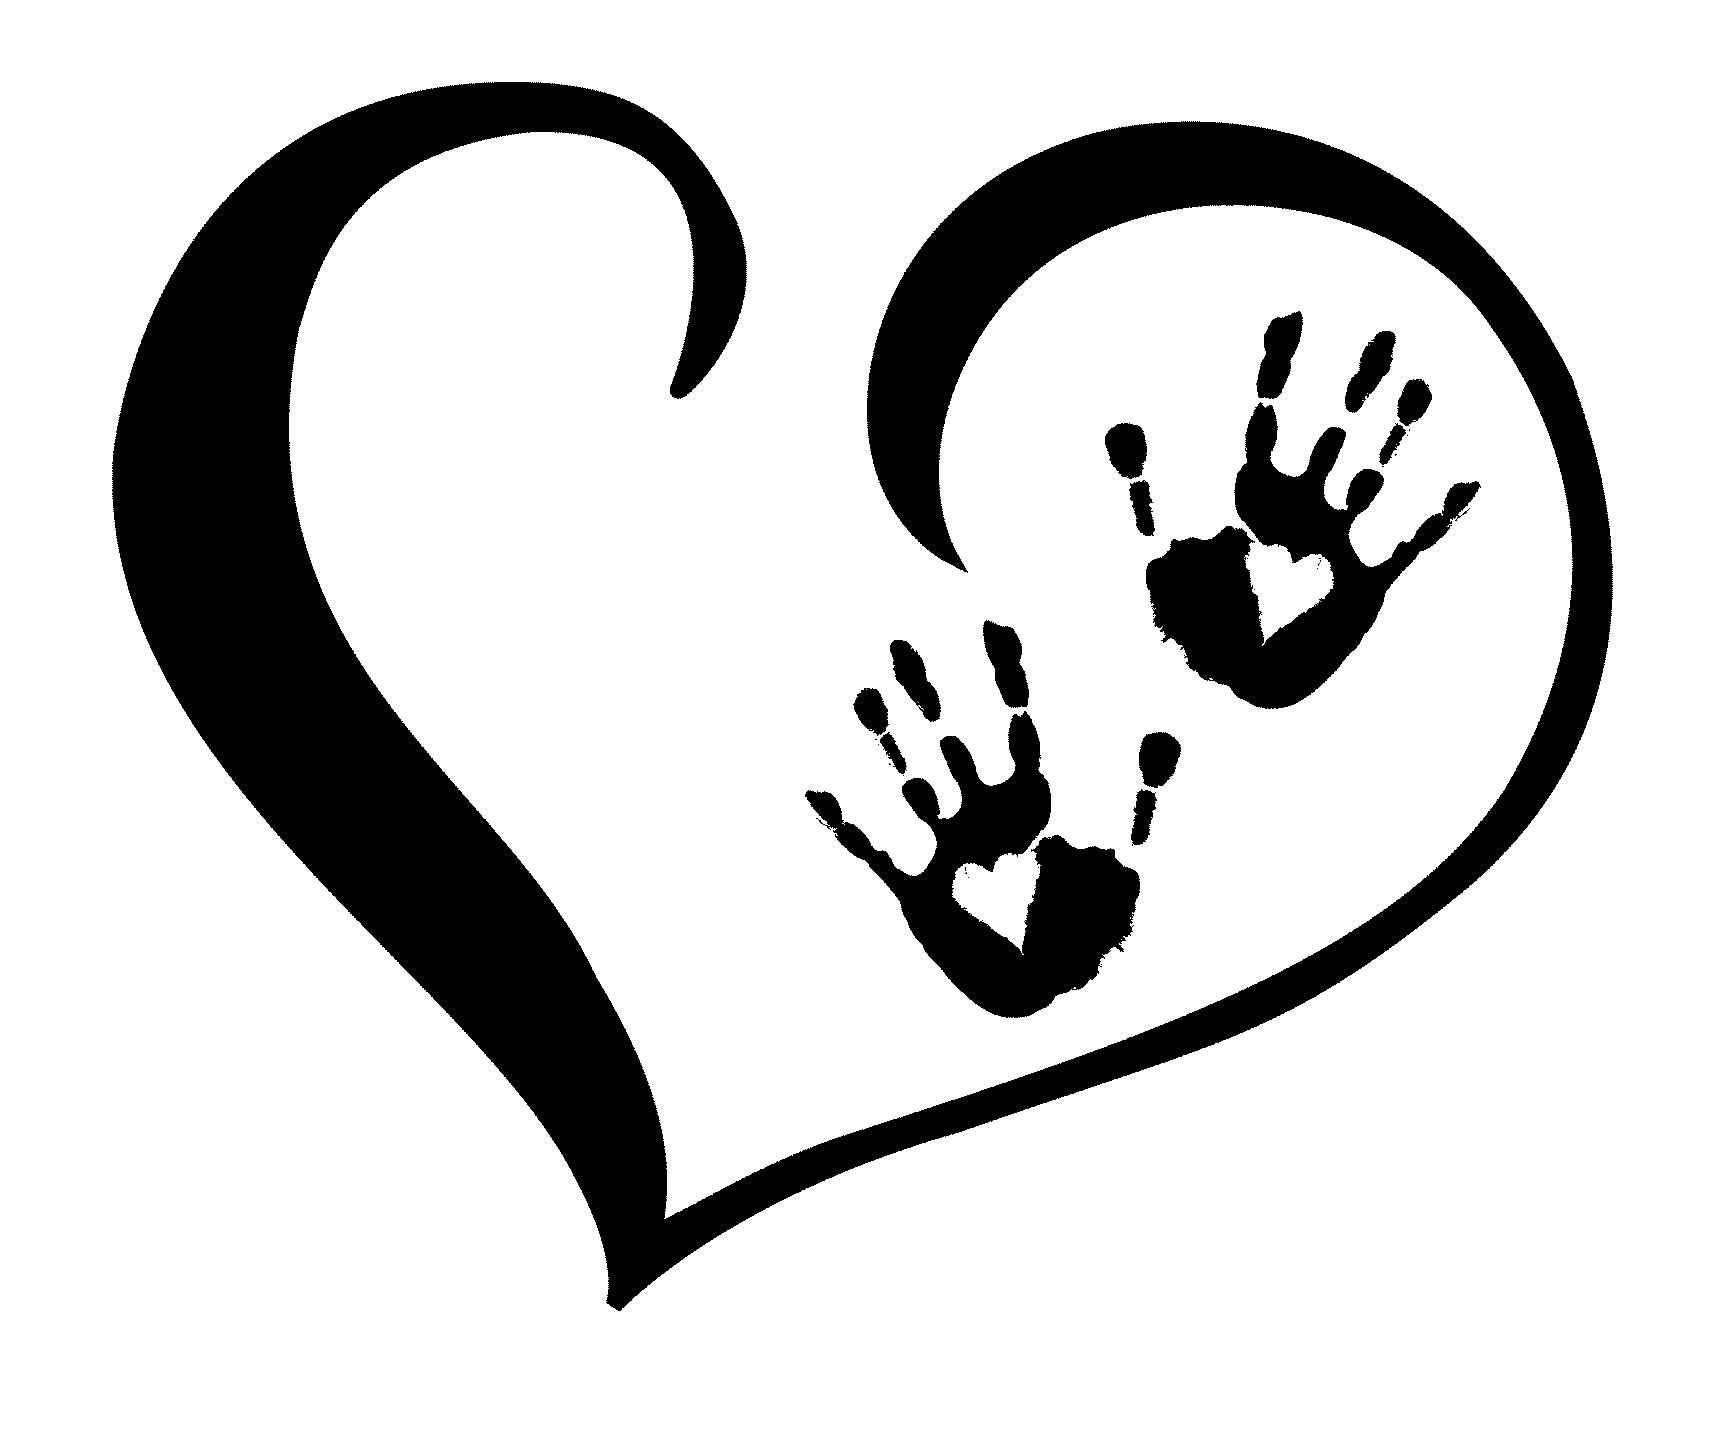 open heart clipart black and white